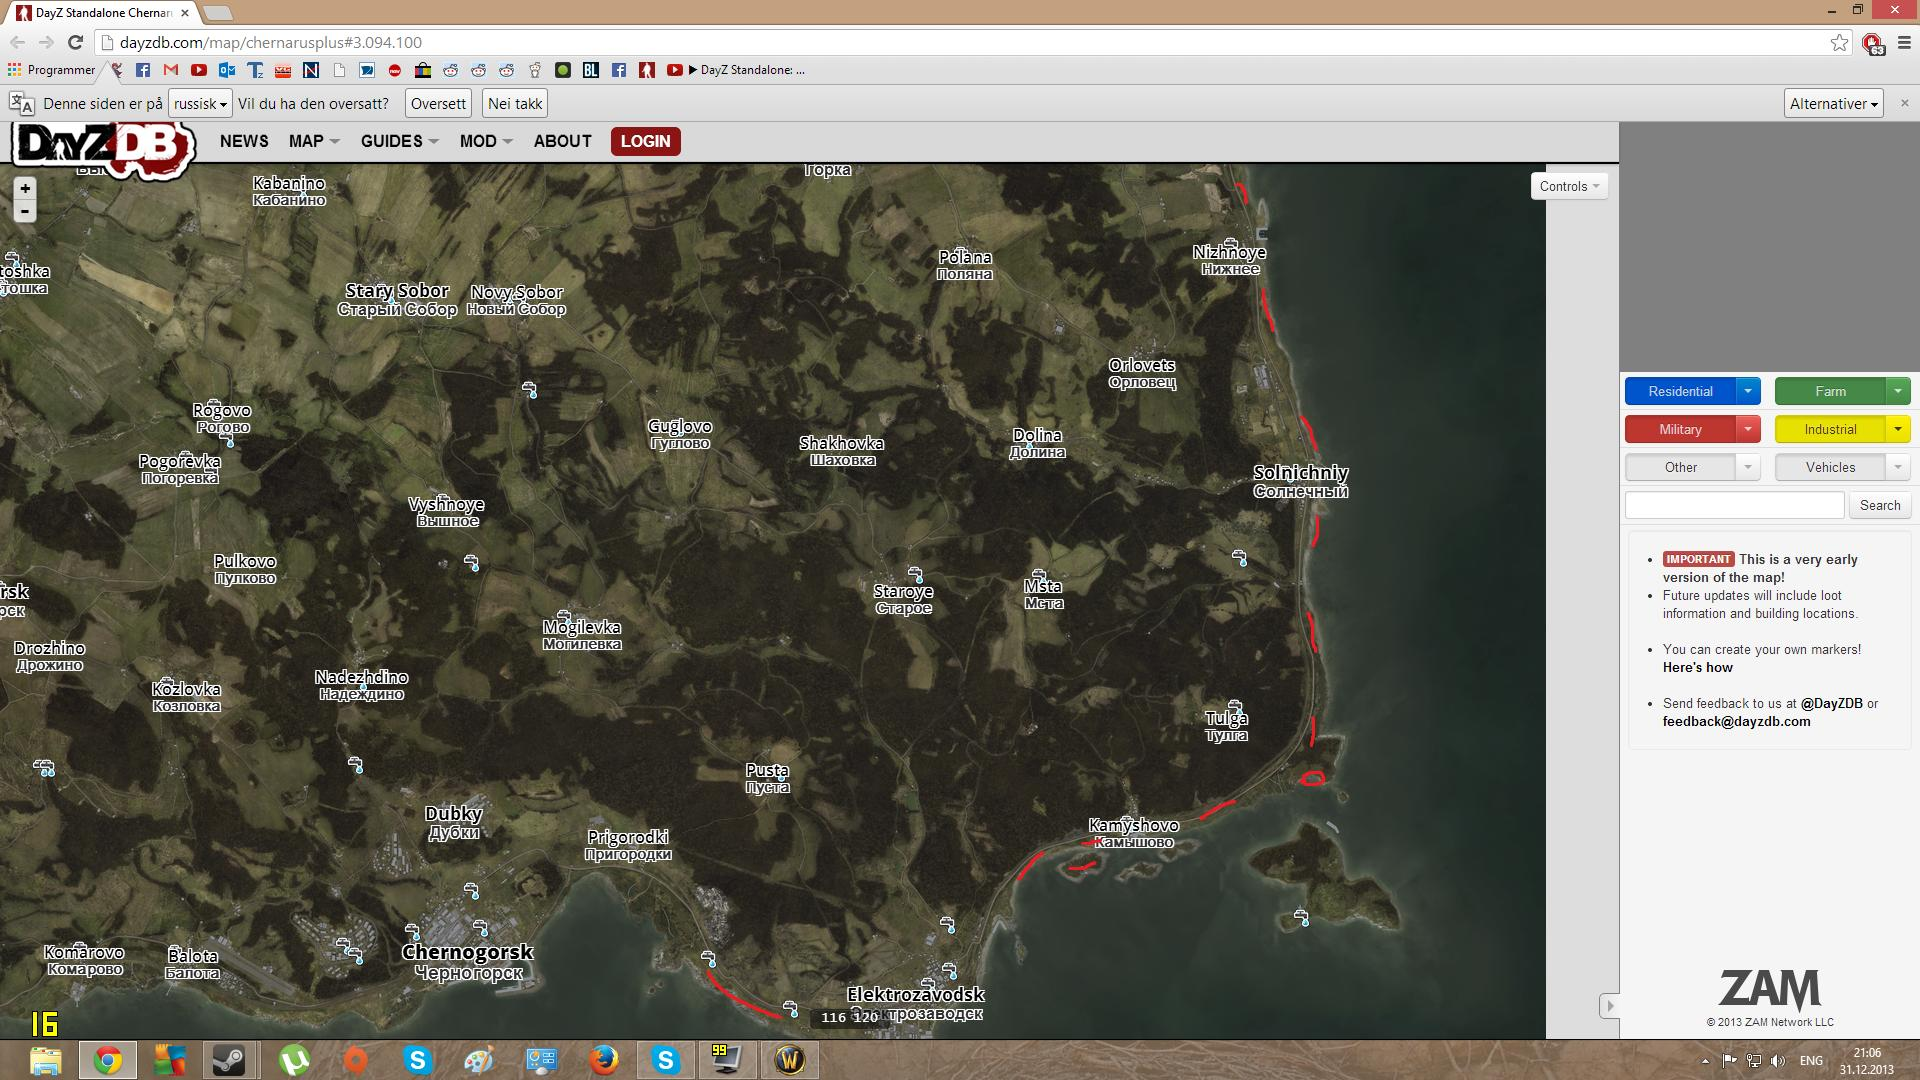 Dayz Standalone Map 62 google maps miami beach children angling fishing